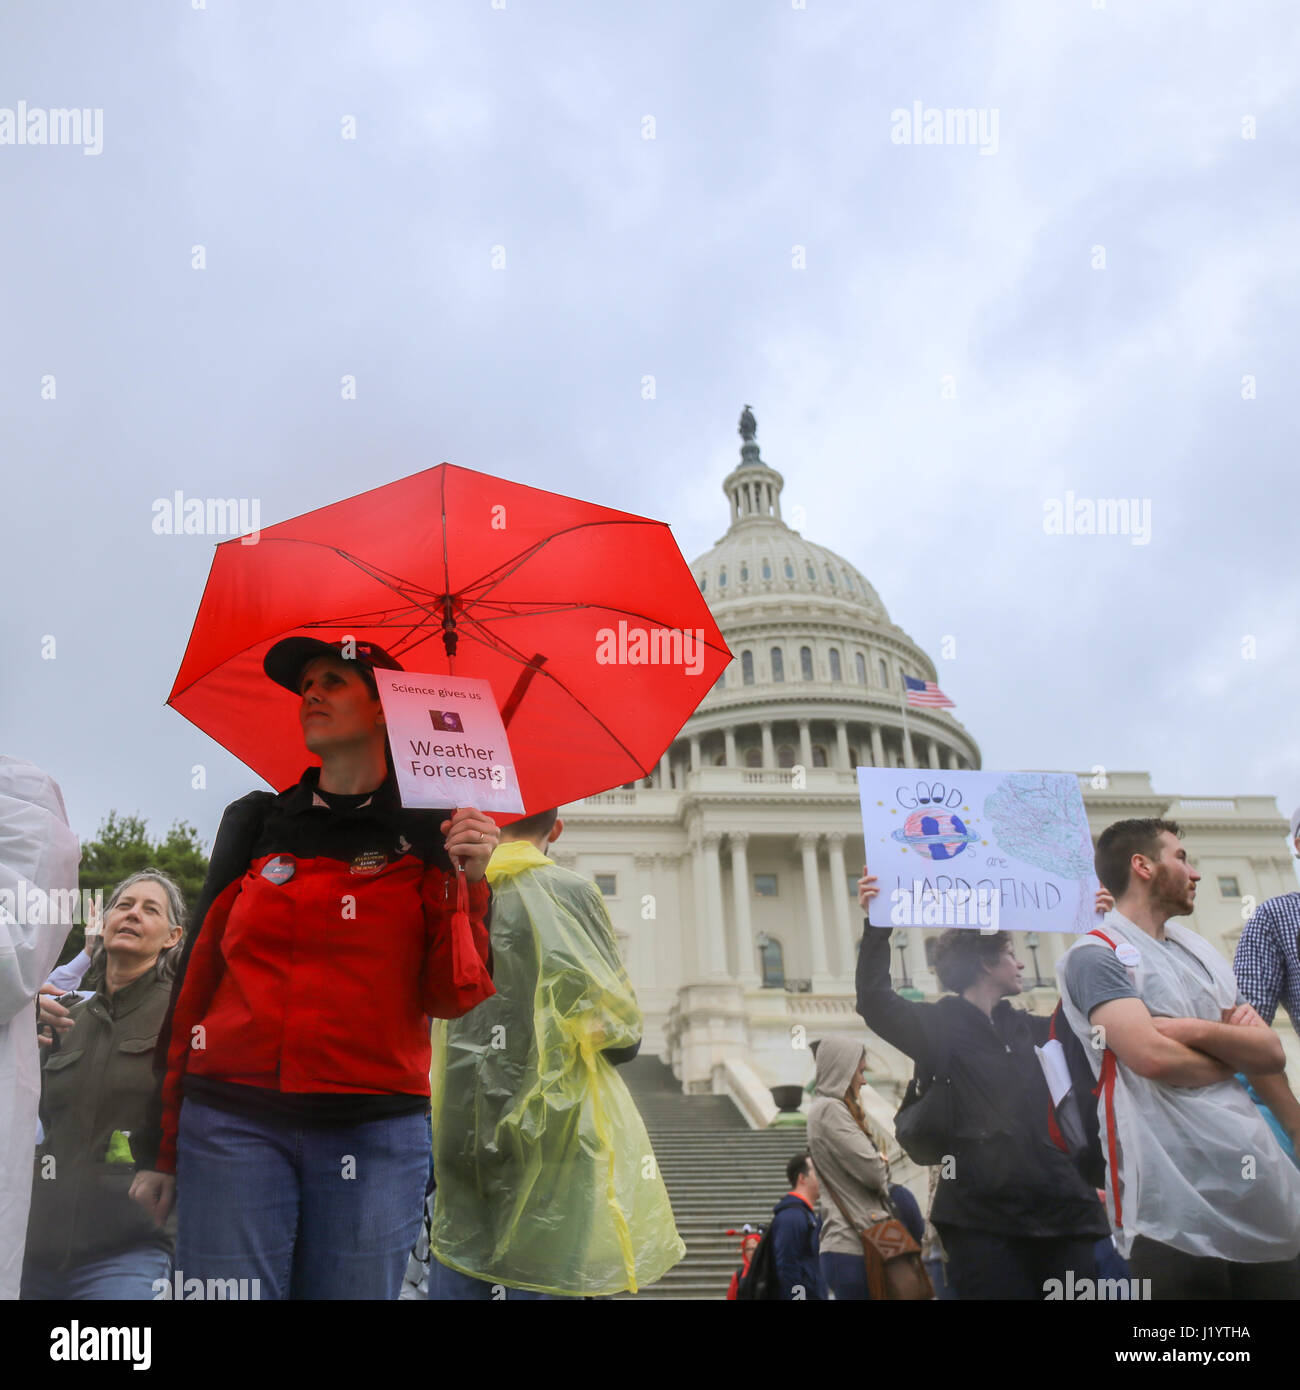 Washington DC, USA. 22nd April, 2017. Activists and protesters march to the United States Capitol as part of the Stock Photo